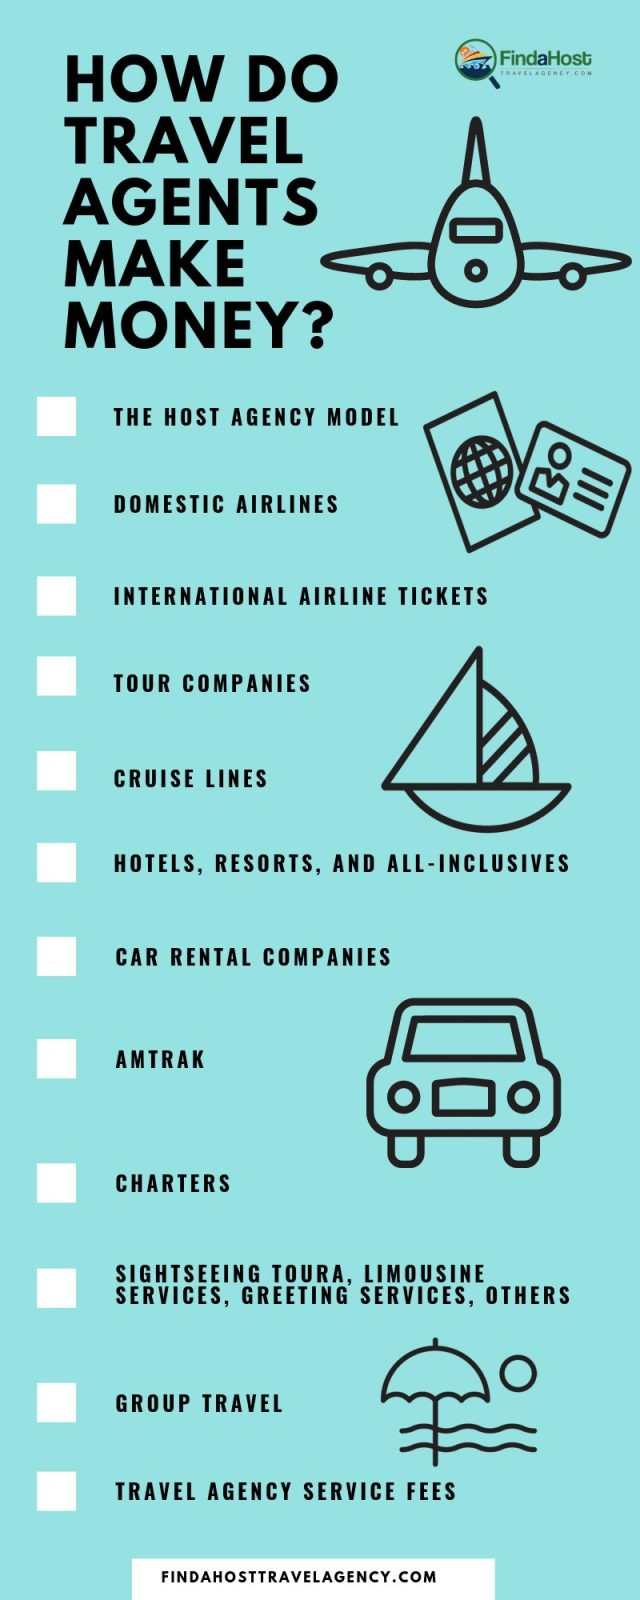 how do travel agents make money in 2019